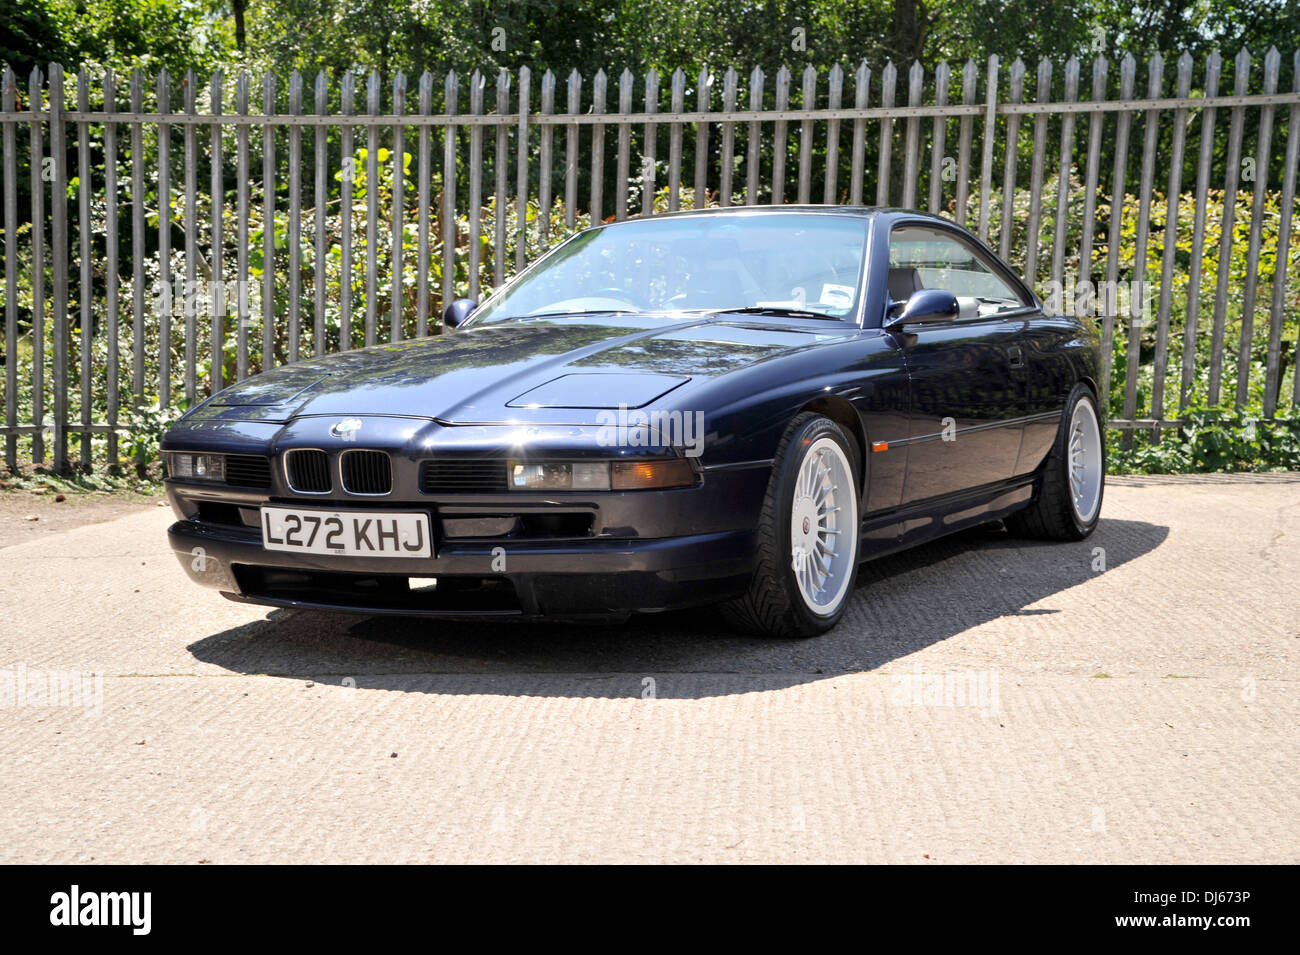 1993 bmw 850i german v8 super coupe now a classic car stock photo royalty free image 62832218. Black Bedroom Furniture Sets. Home Design Ideas